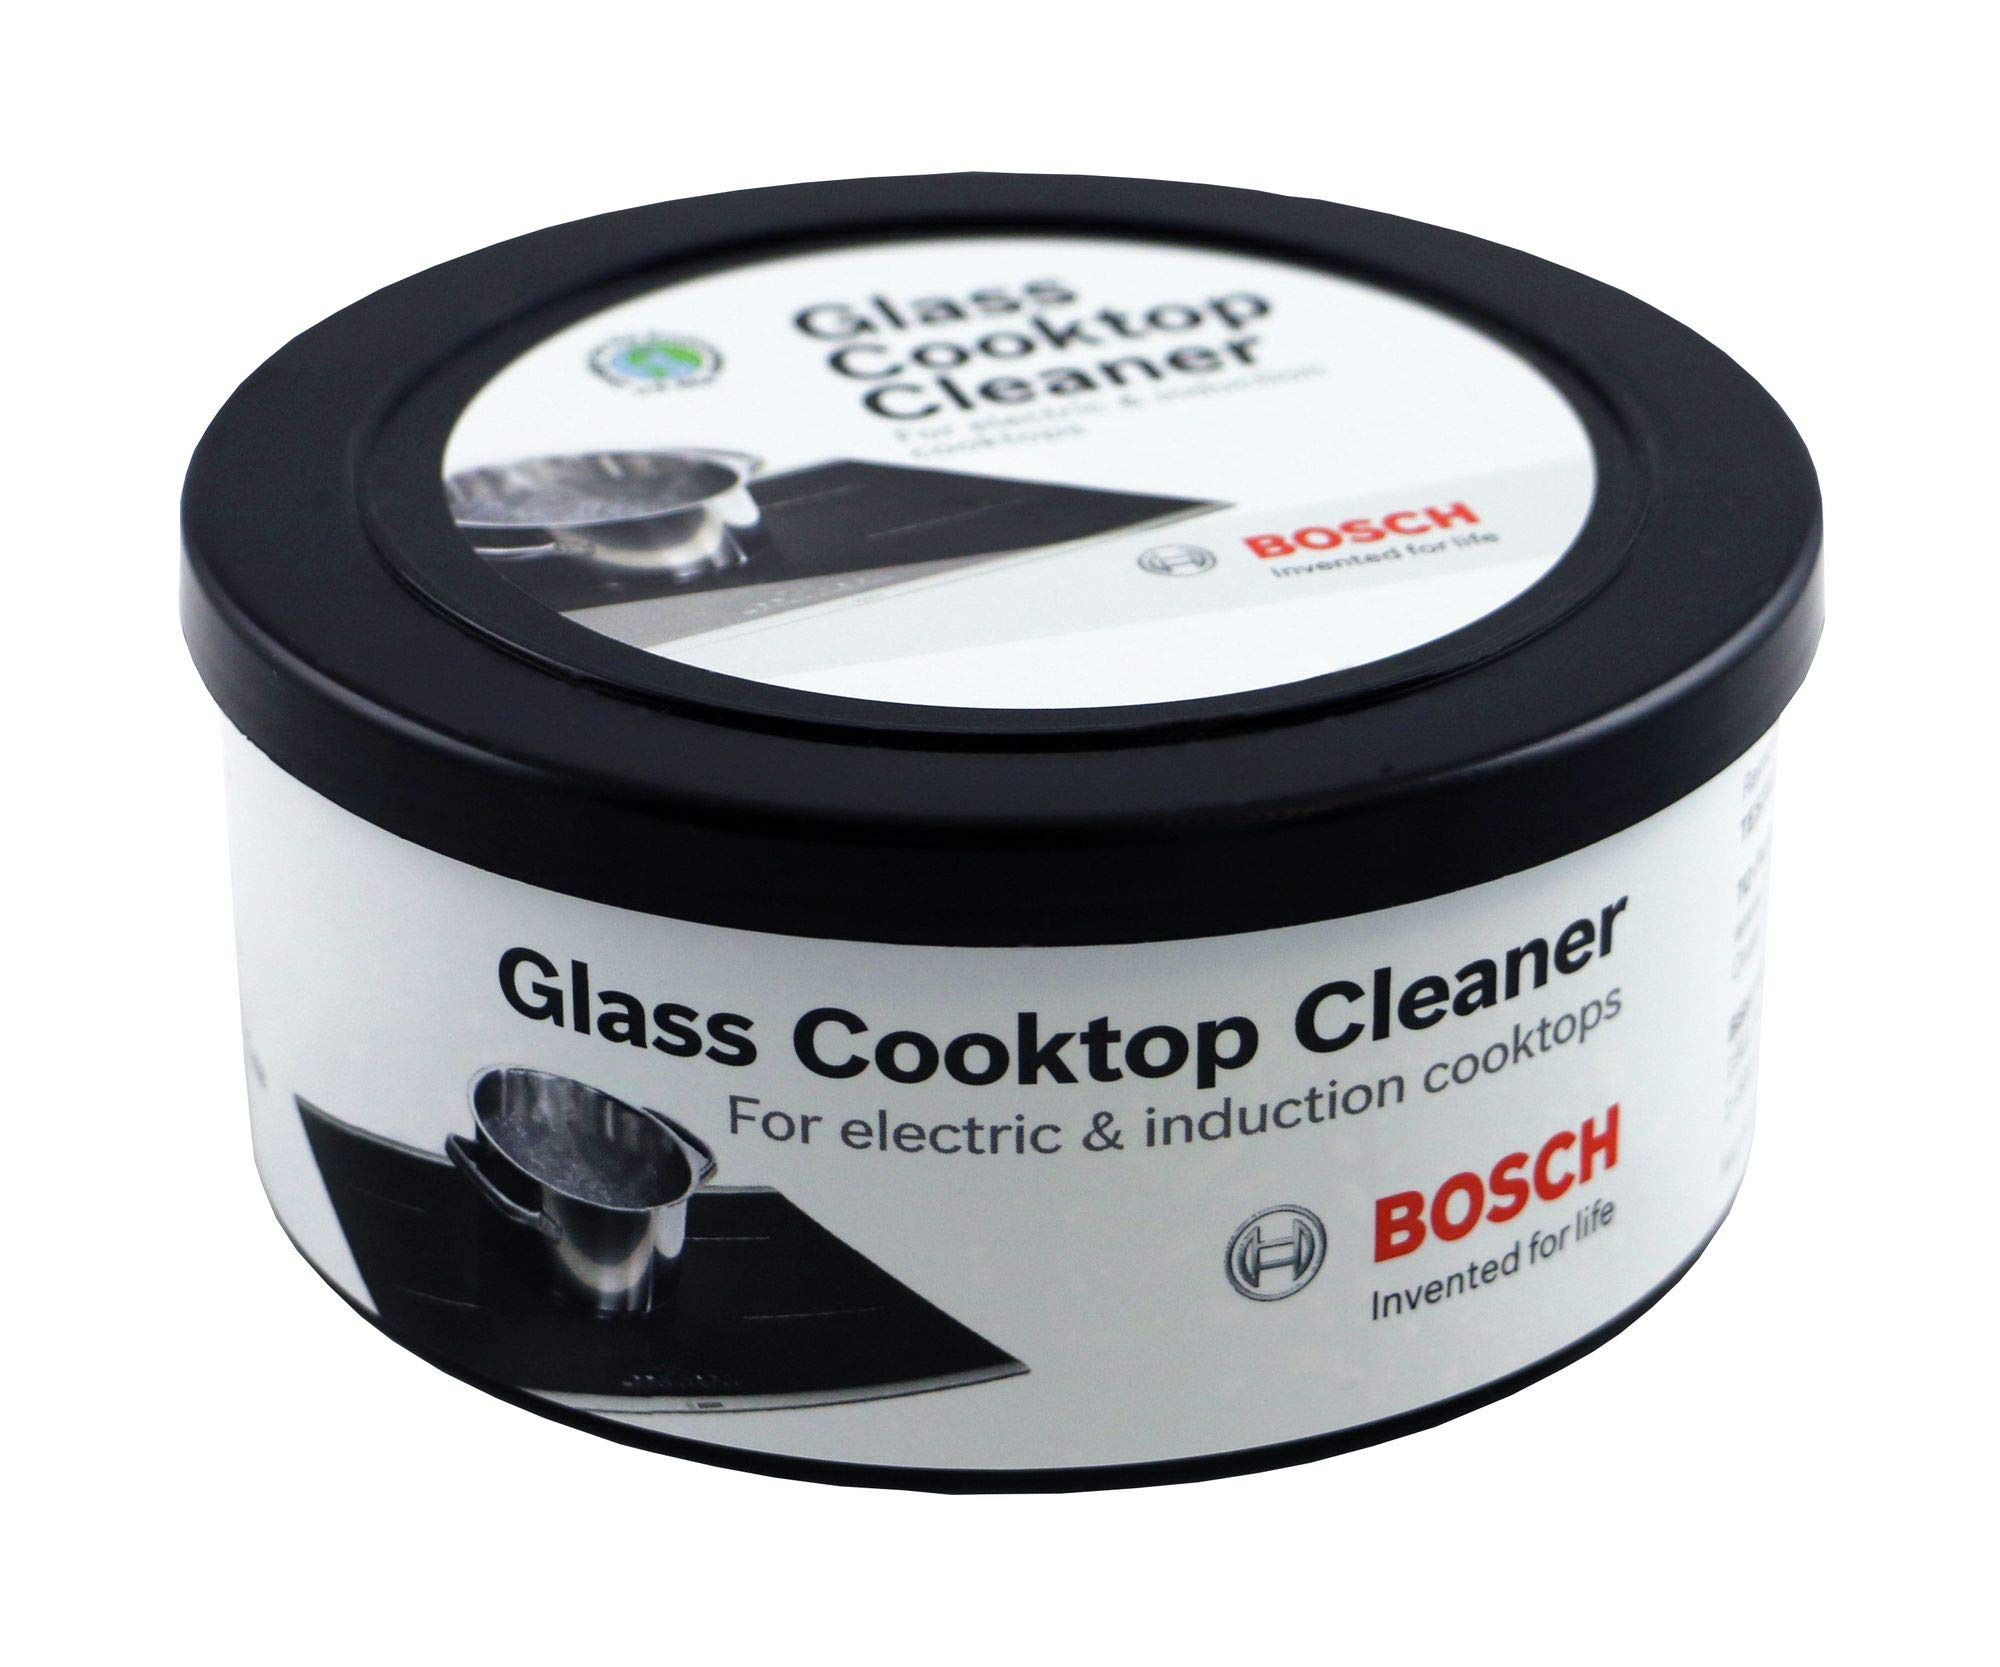 Bosch 12010030 Glass Cooktop Cleaner For Electric & Induction Cooktops Set of Two 12-ounce tubs by Bosch